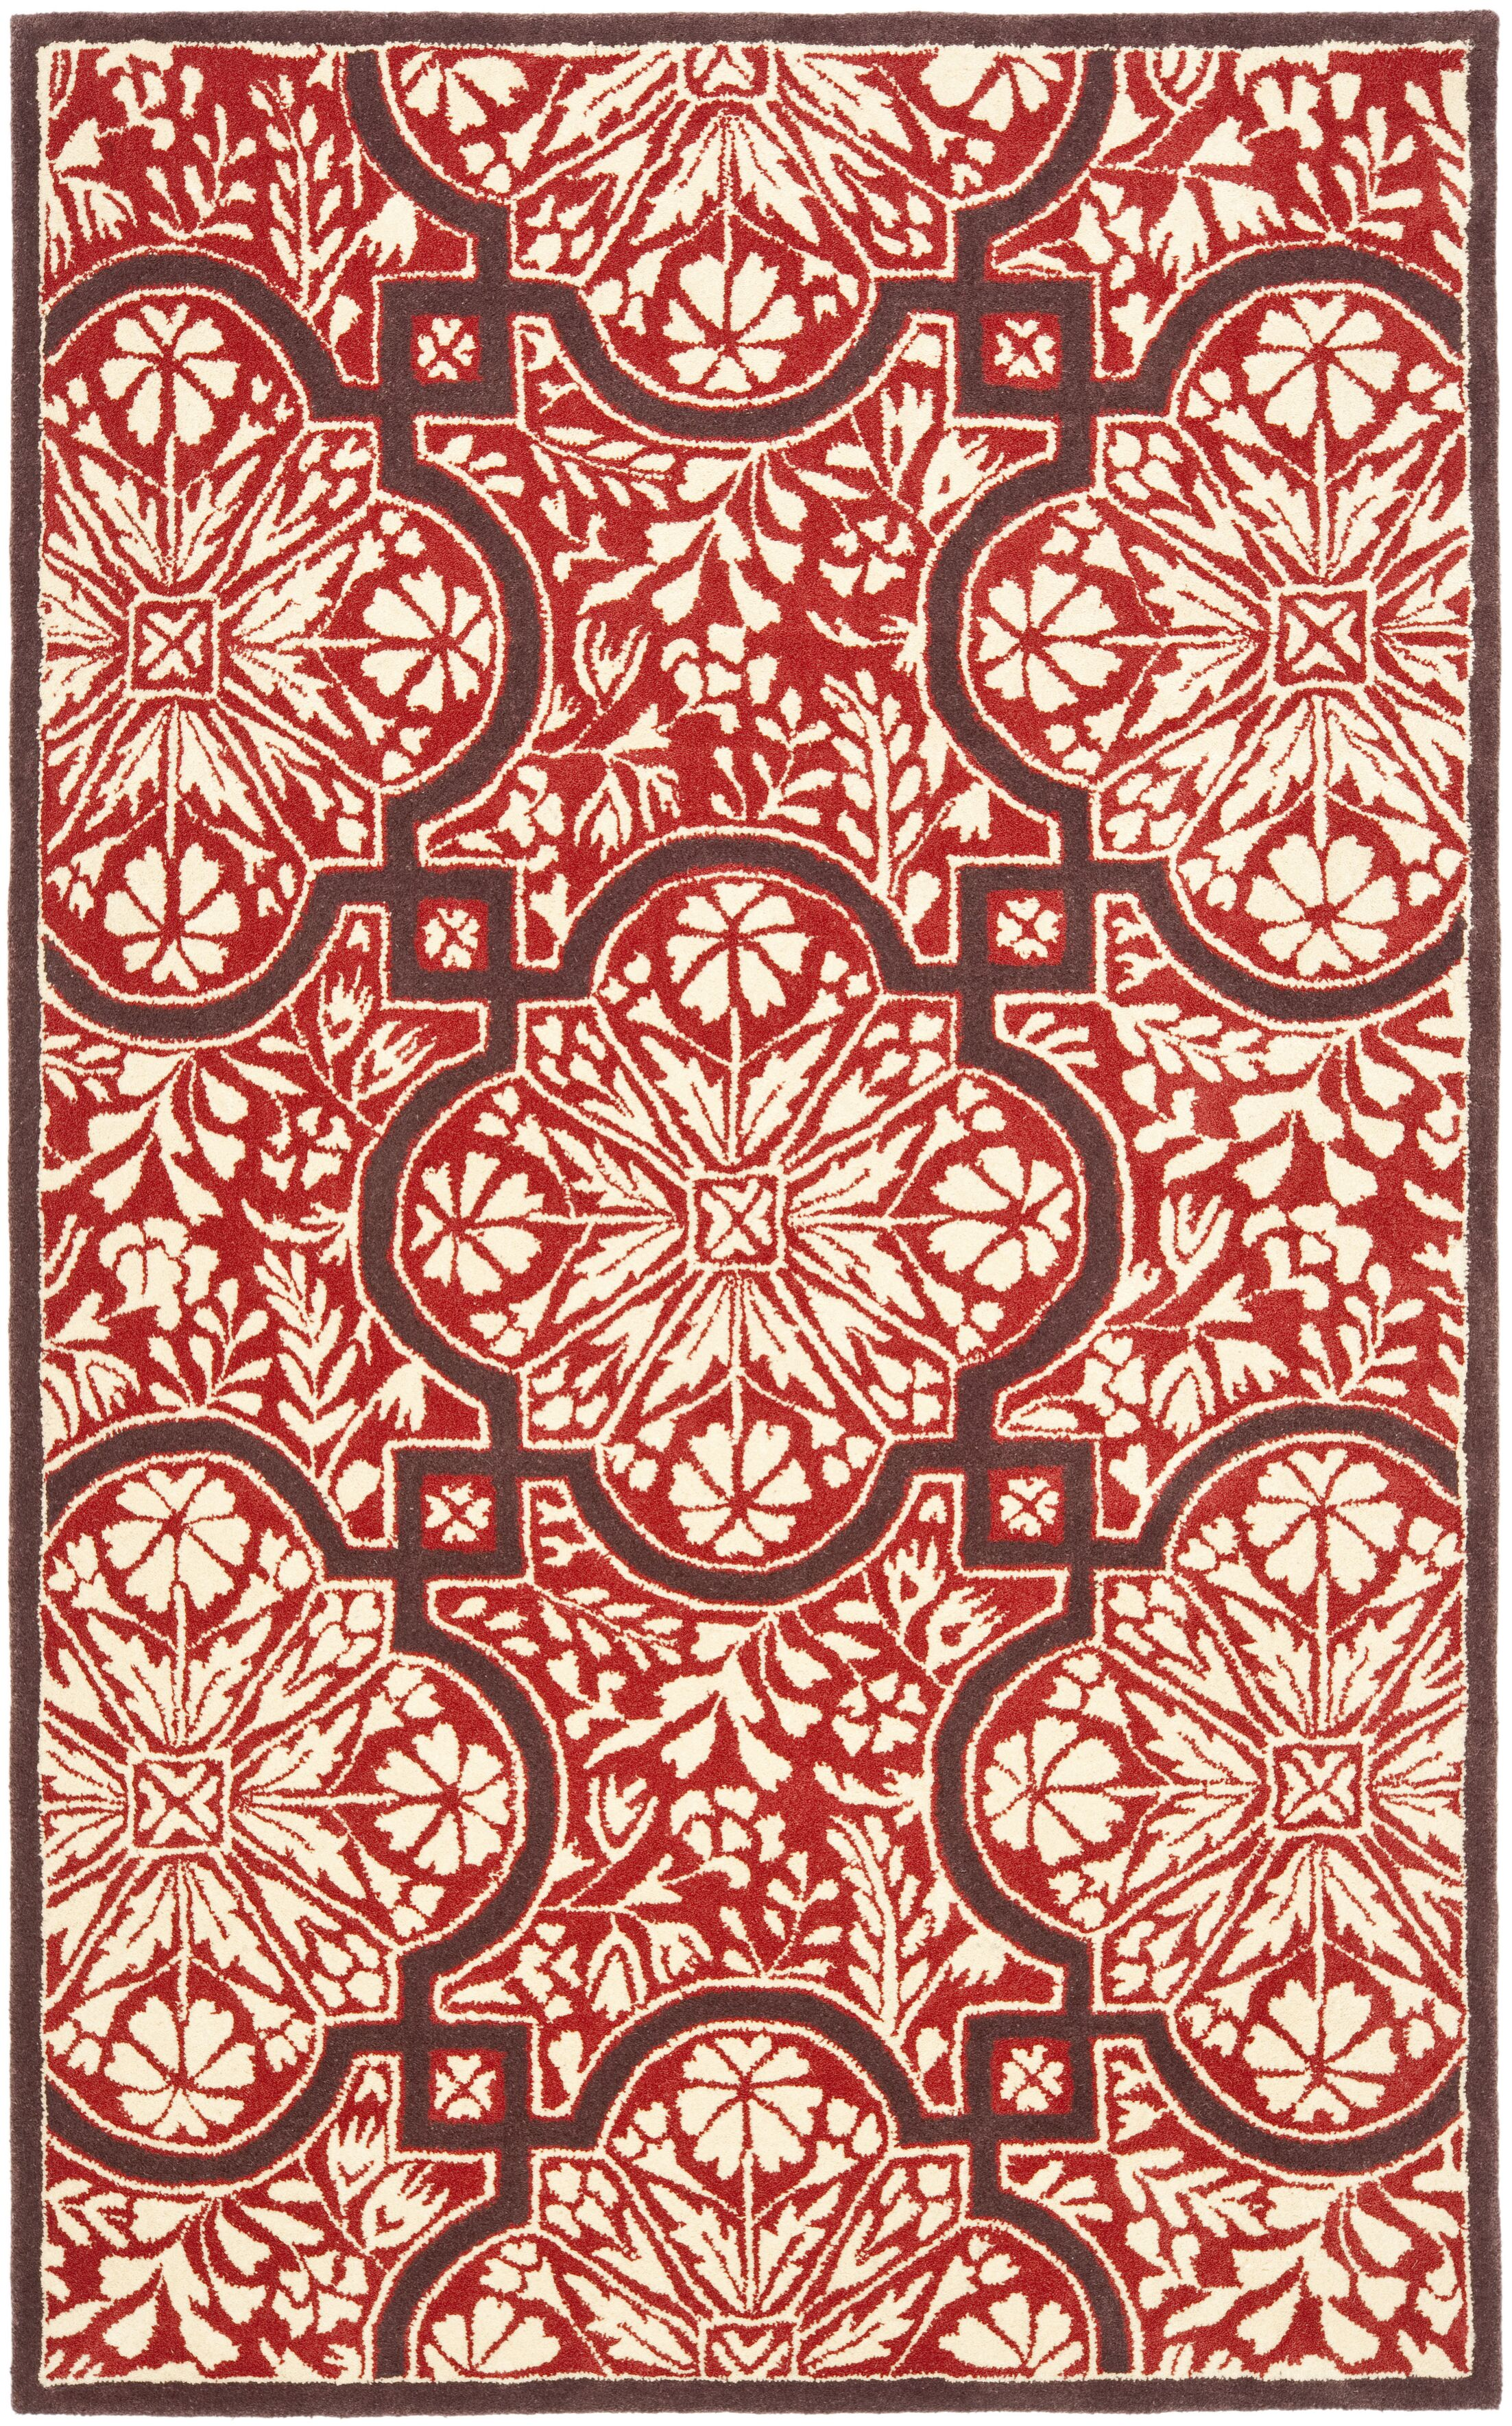 French Hand-Woven Vermillon Area Rug Rug Size: Rectangle 8' x 10'